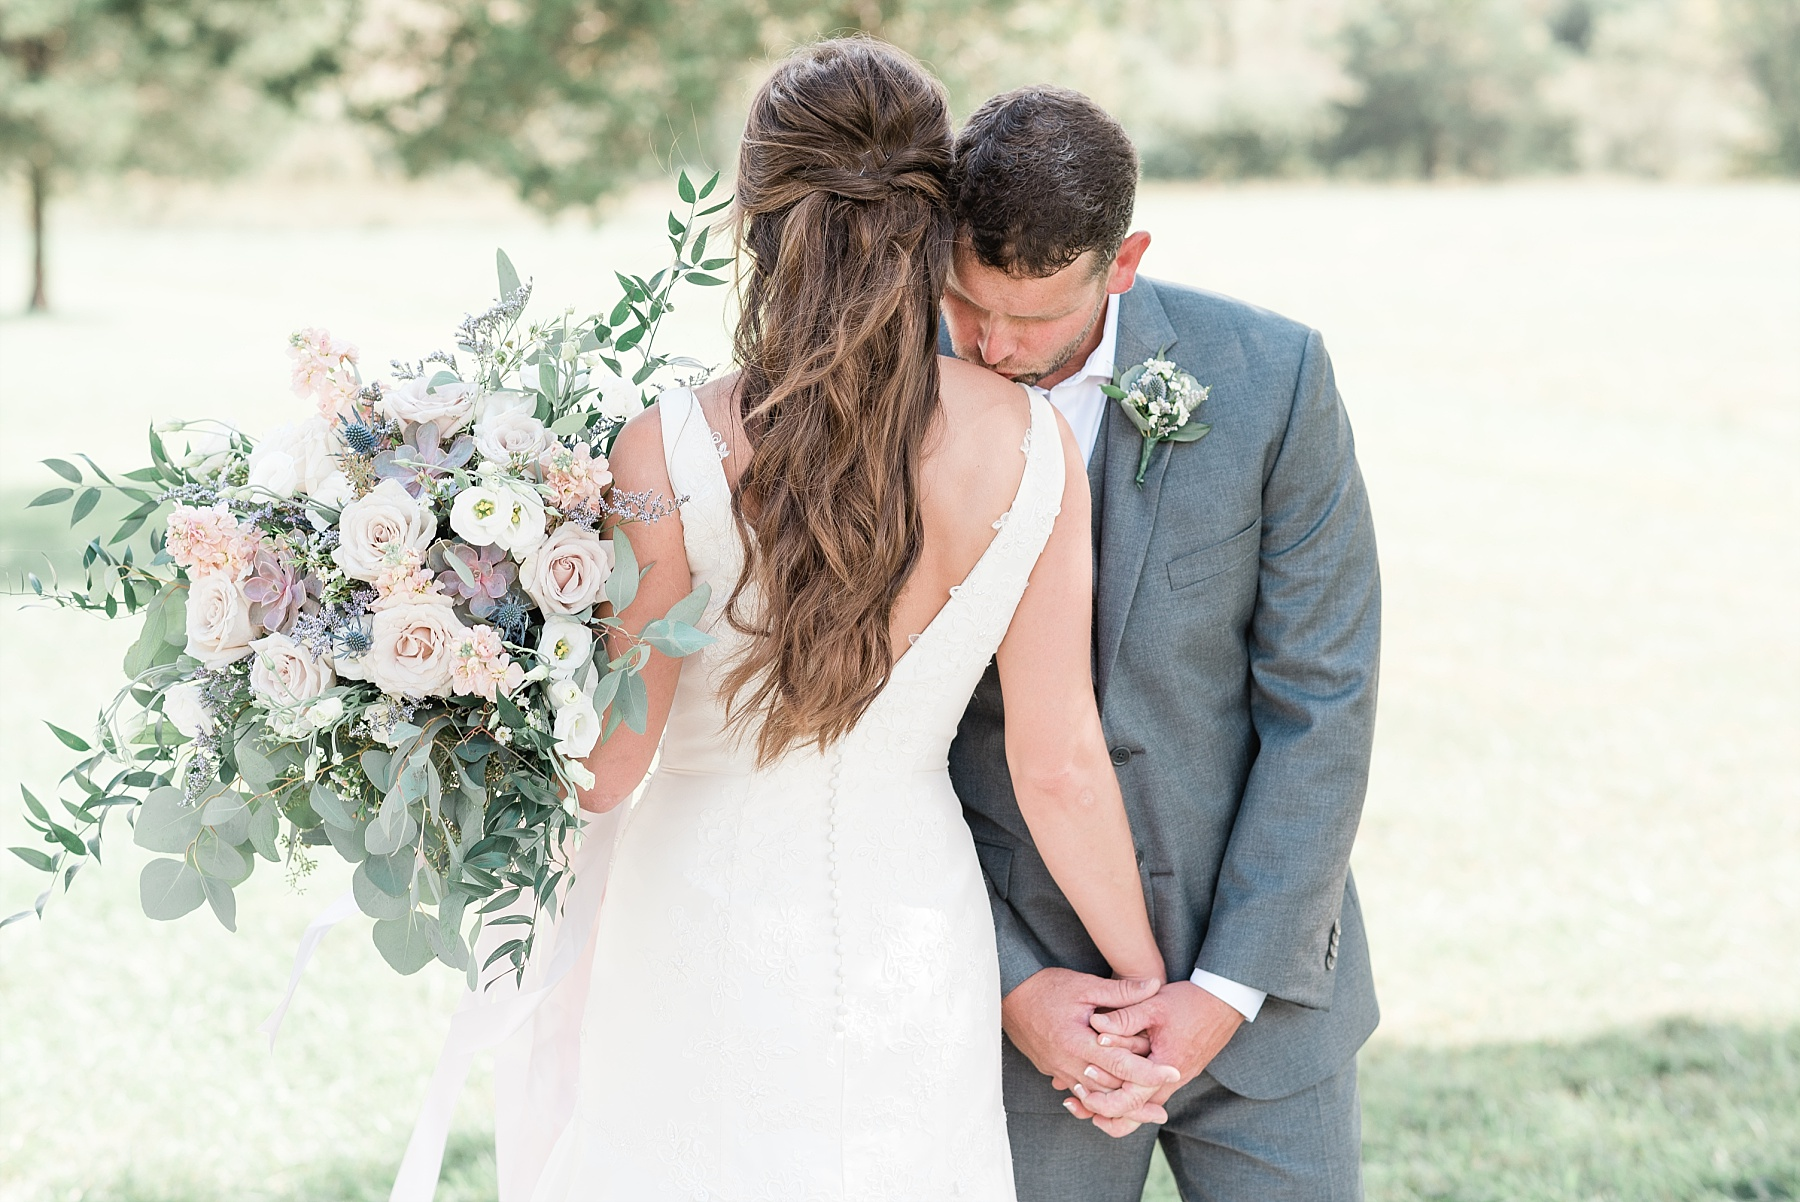 Fine Art Sunset Themed Wedding in Autumn at Dodson Orchards by Kelsi Kliethermes Photography_0034.jpg